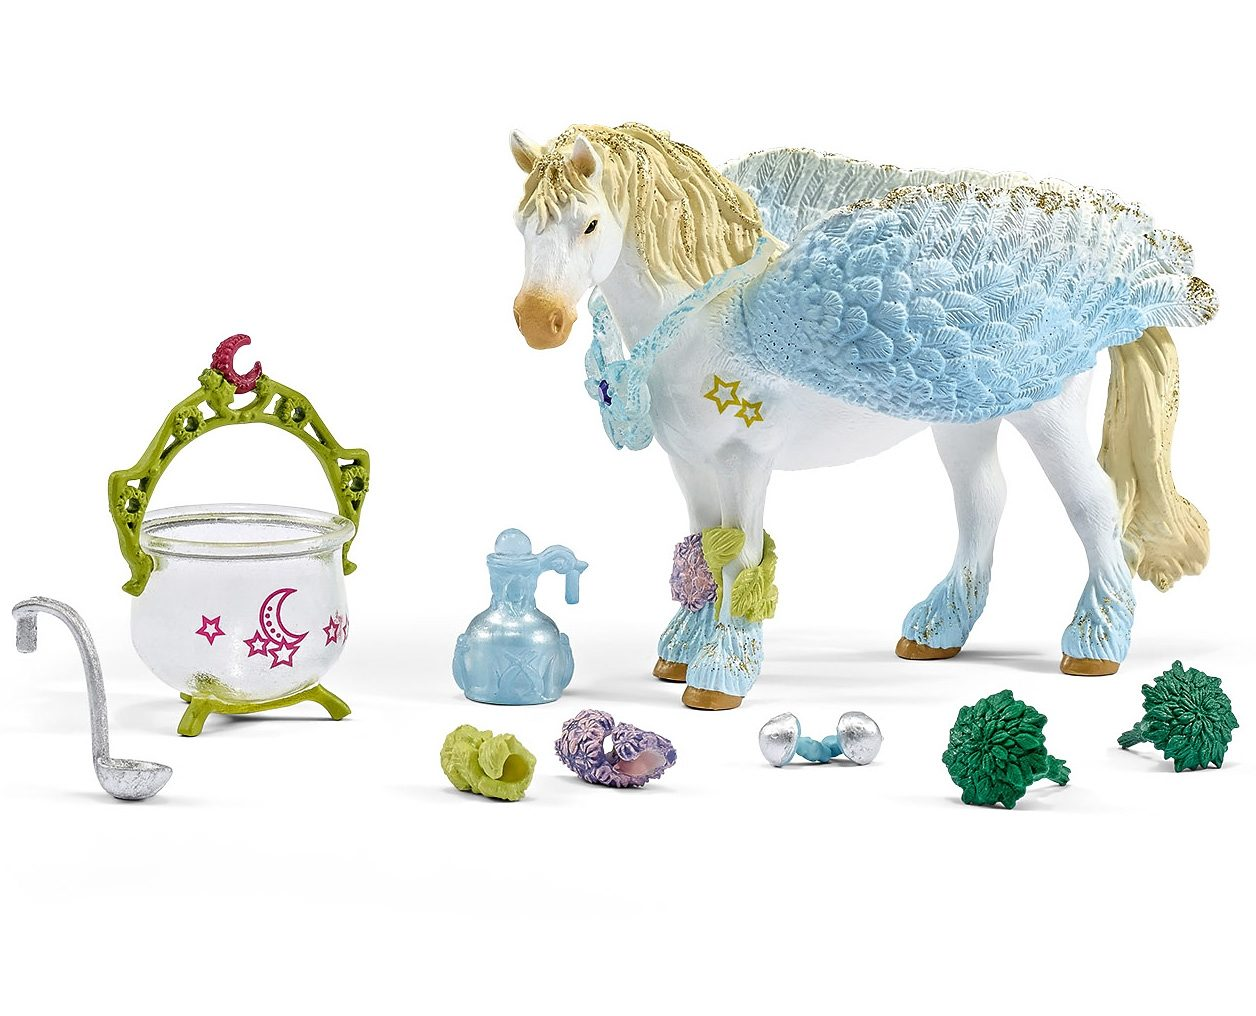 Schleich® Spielfiguren-Set, »World of Fantasy bayala - Heilungsset, groß«